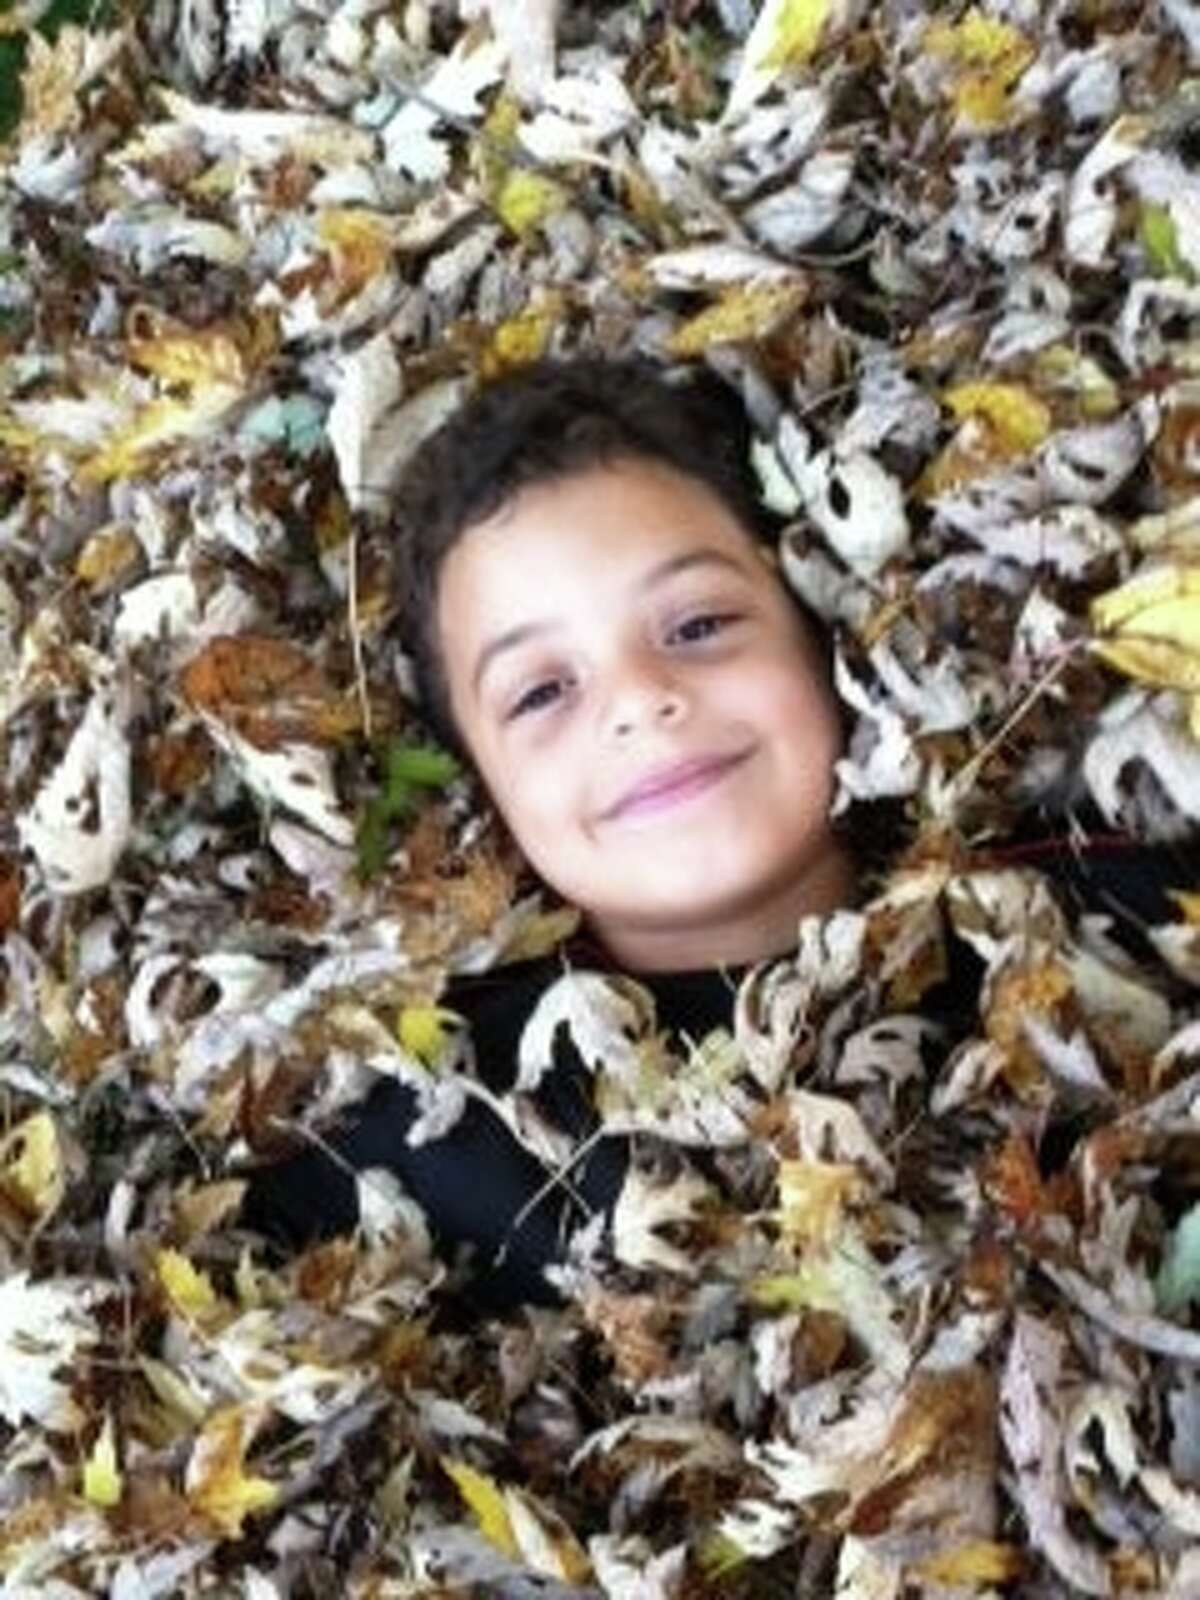 After a hard five minutes of helping his mom. Jennifer Chatain. gather leaves, Elijah decided to make leaf angels and bury himself. Elijah, 6, attends Saint Kateri Parish School and was excited to play in the leaves because the Colonie family's old home was on a busy street with no yard or leaves.